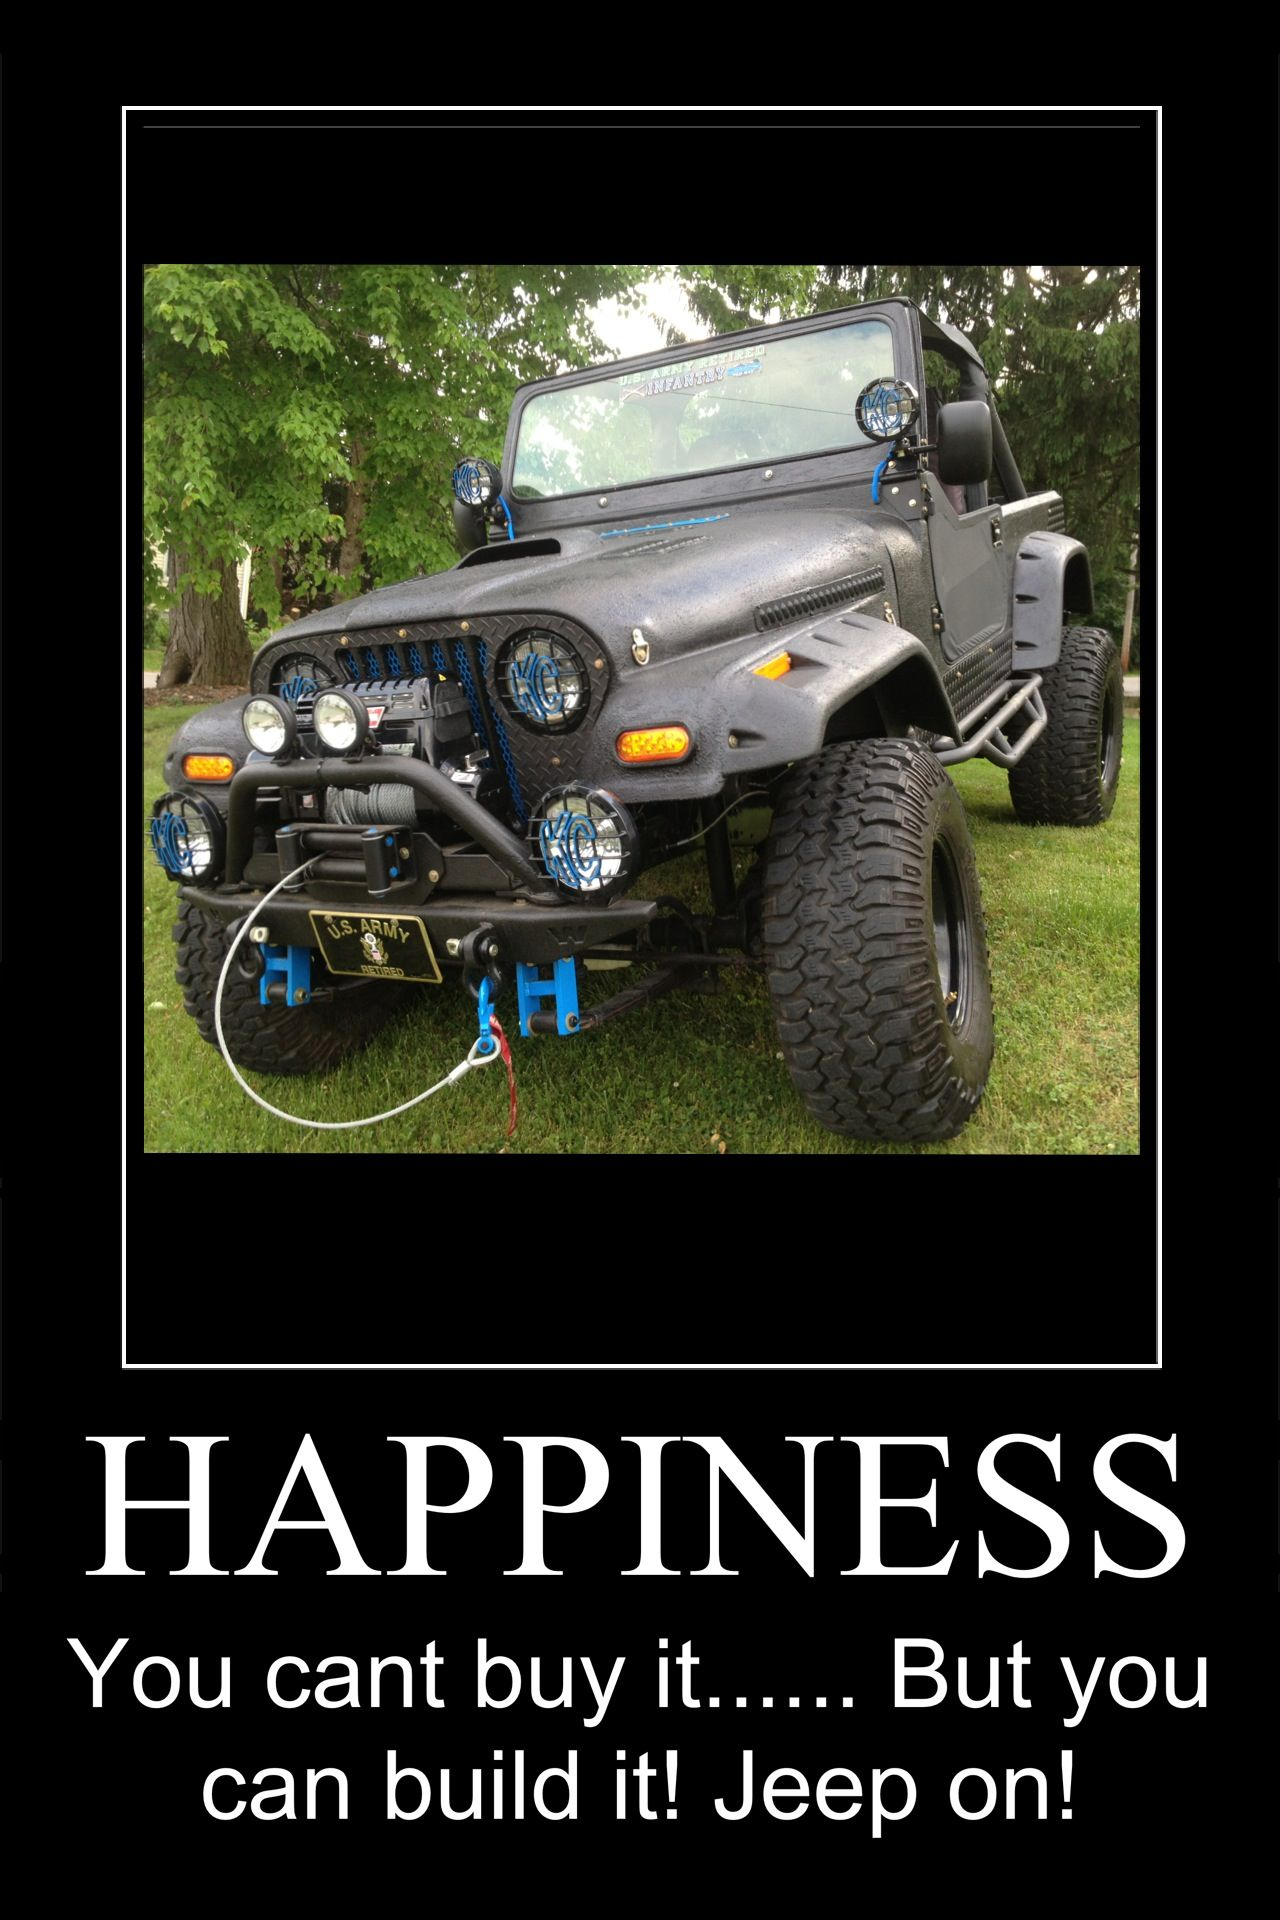 Jeep Quotes Happiness  You Can't Buy It… But You Can Build It Jeep On